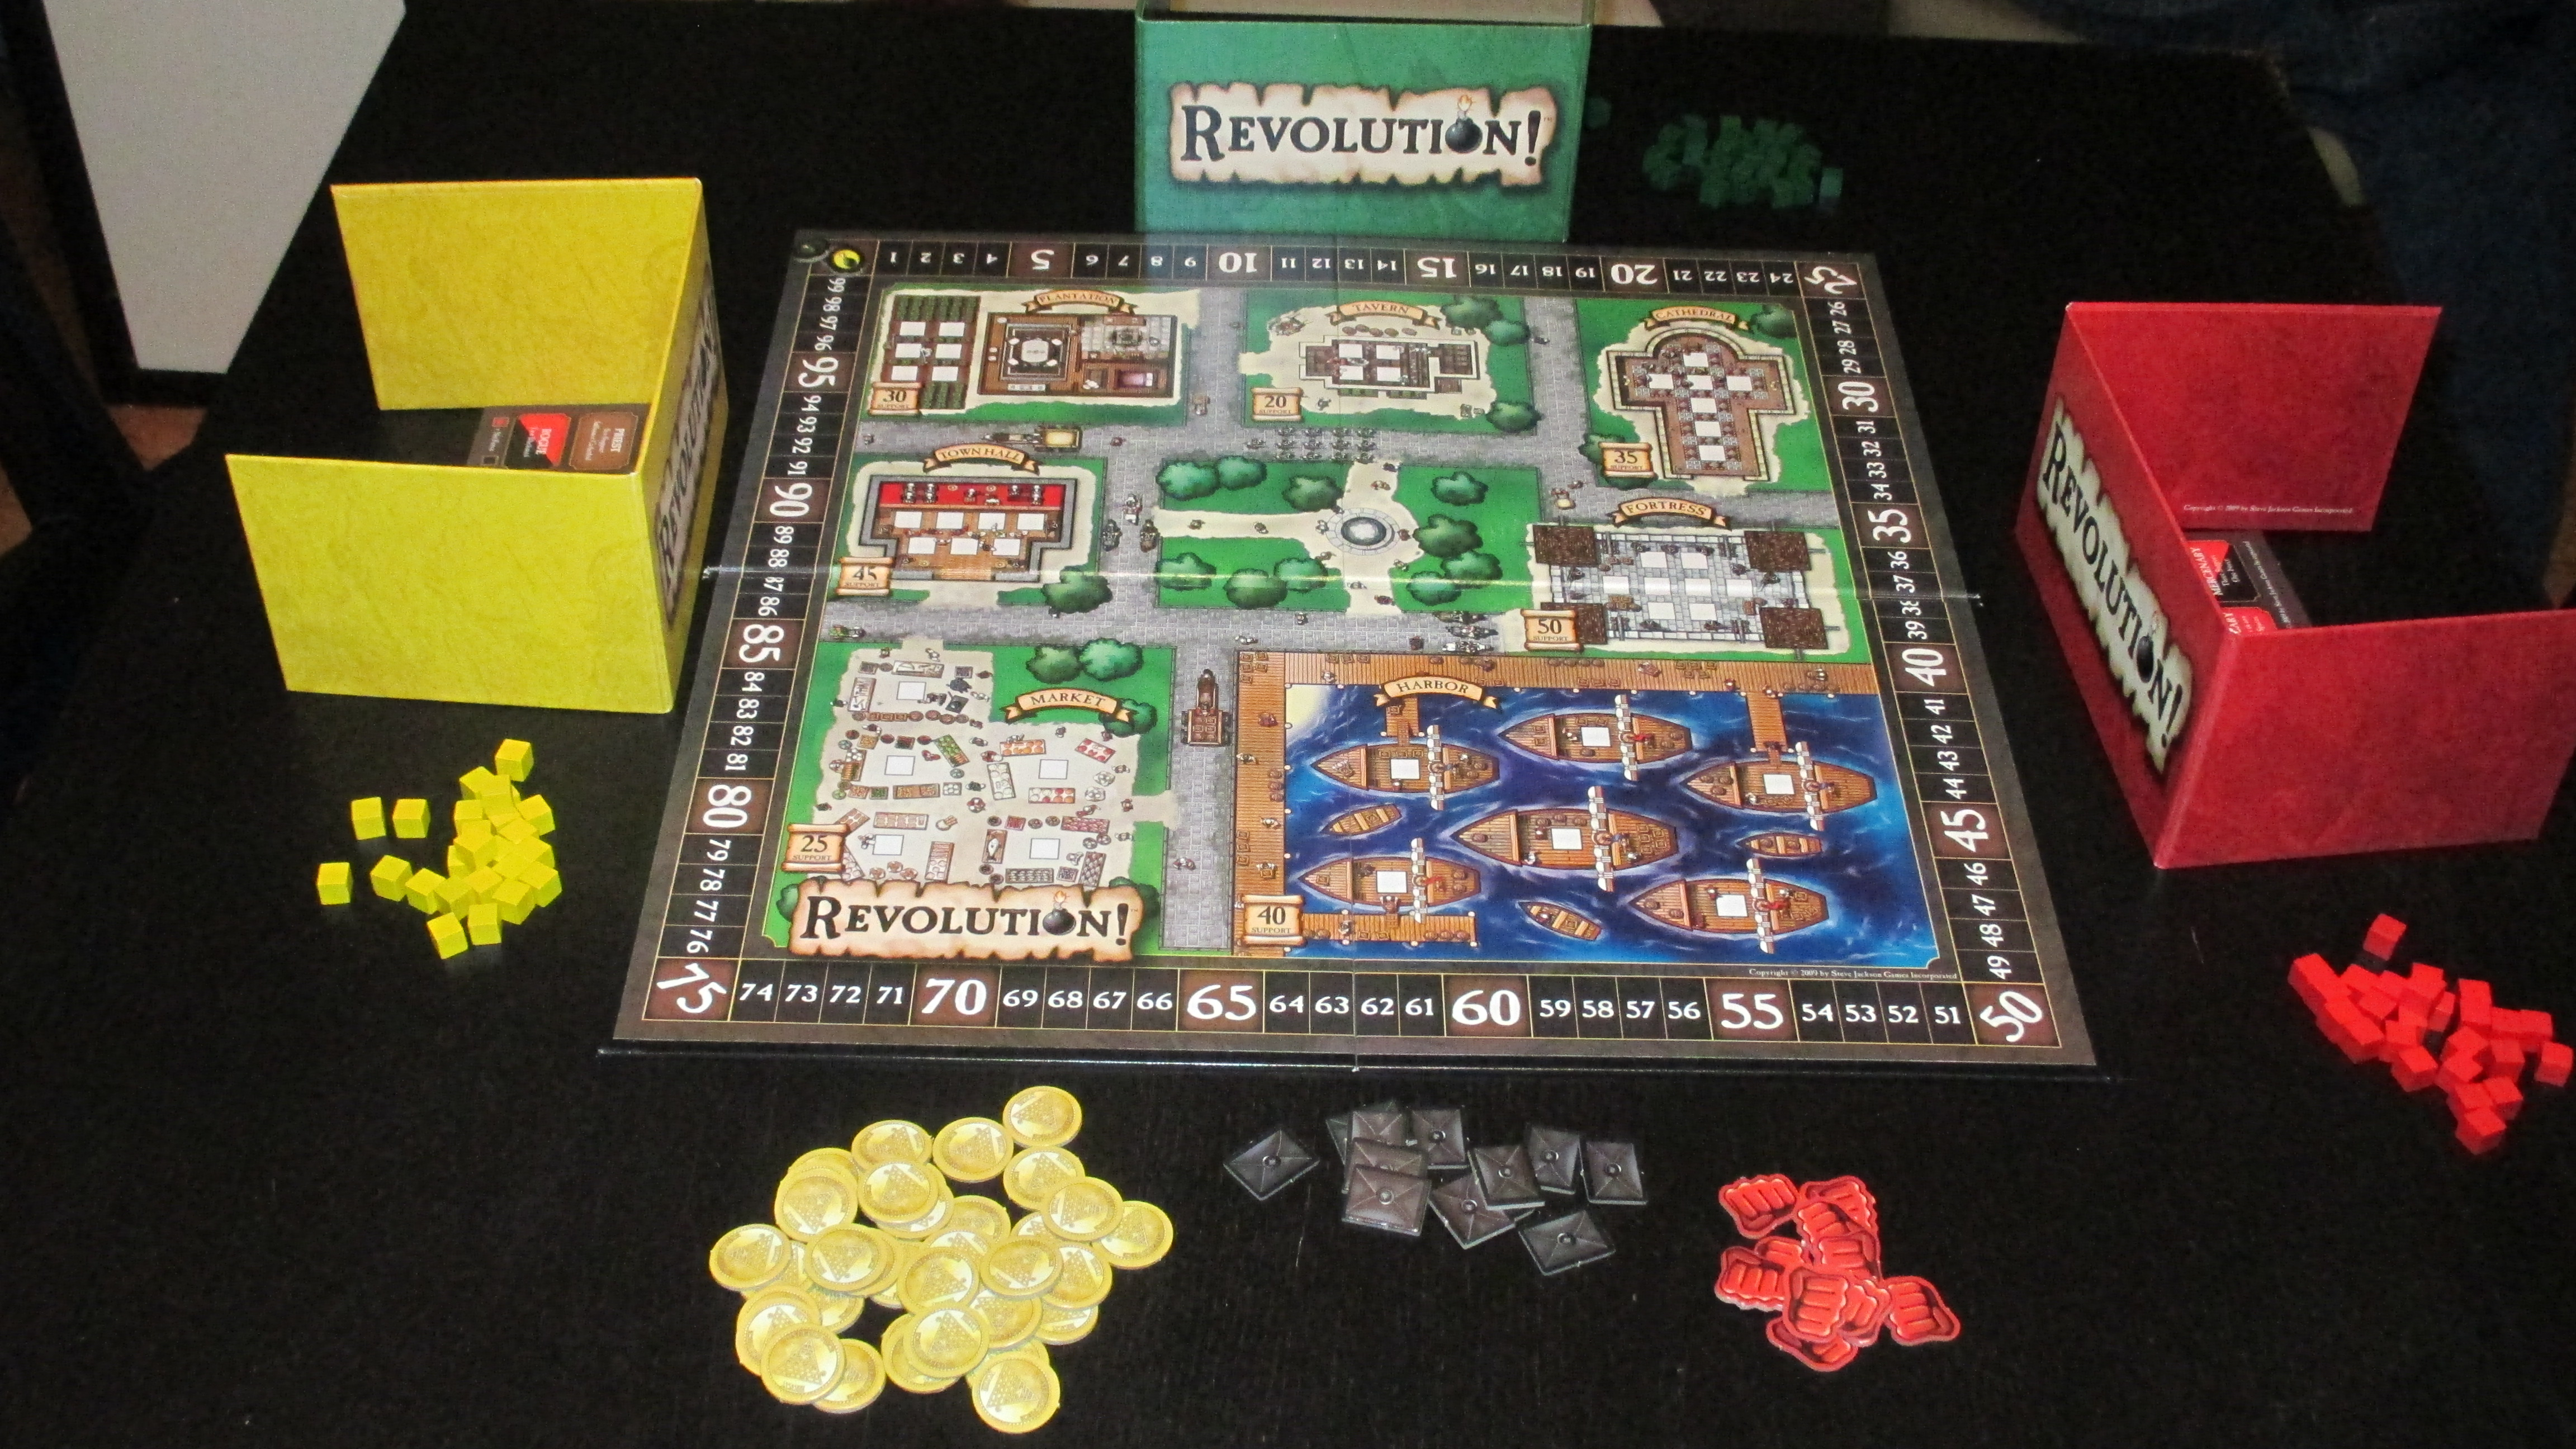 Set up for a 3-player game